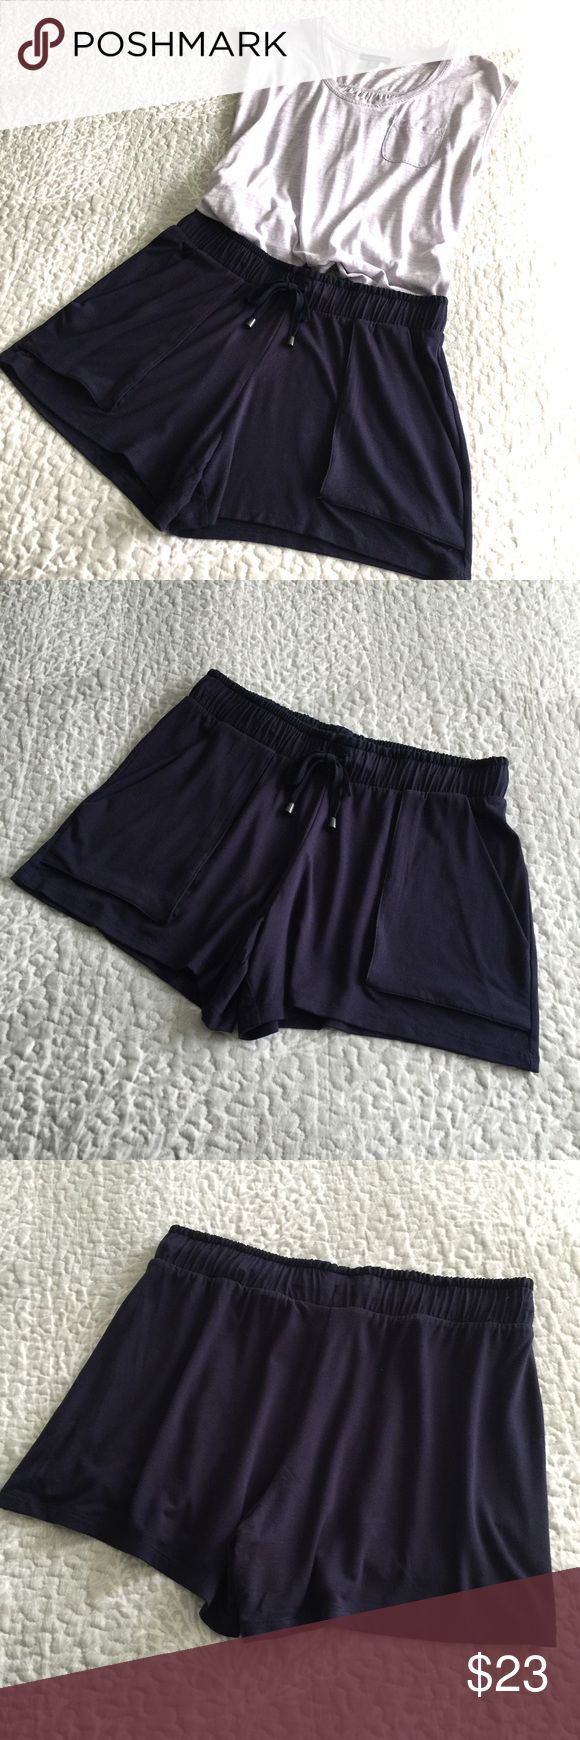 Next Shorts (NextDirect-UK) Never worn.  Lightweight, soft fabric with elastic waist.  Please see photos for sizing and measurements.  Bundle for discount. Next  Shorts